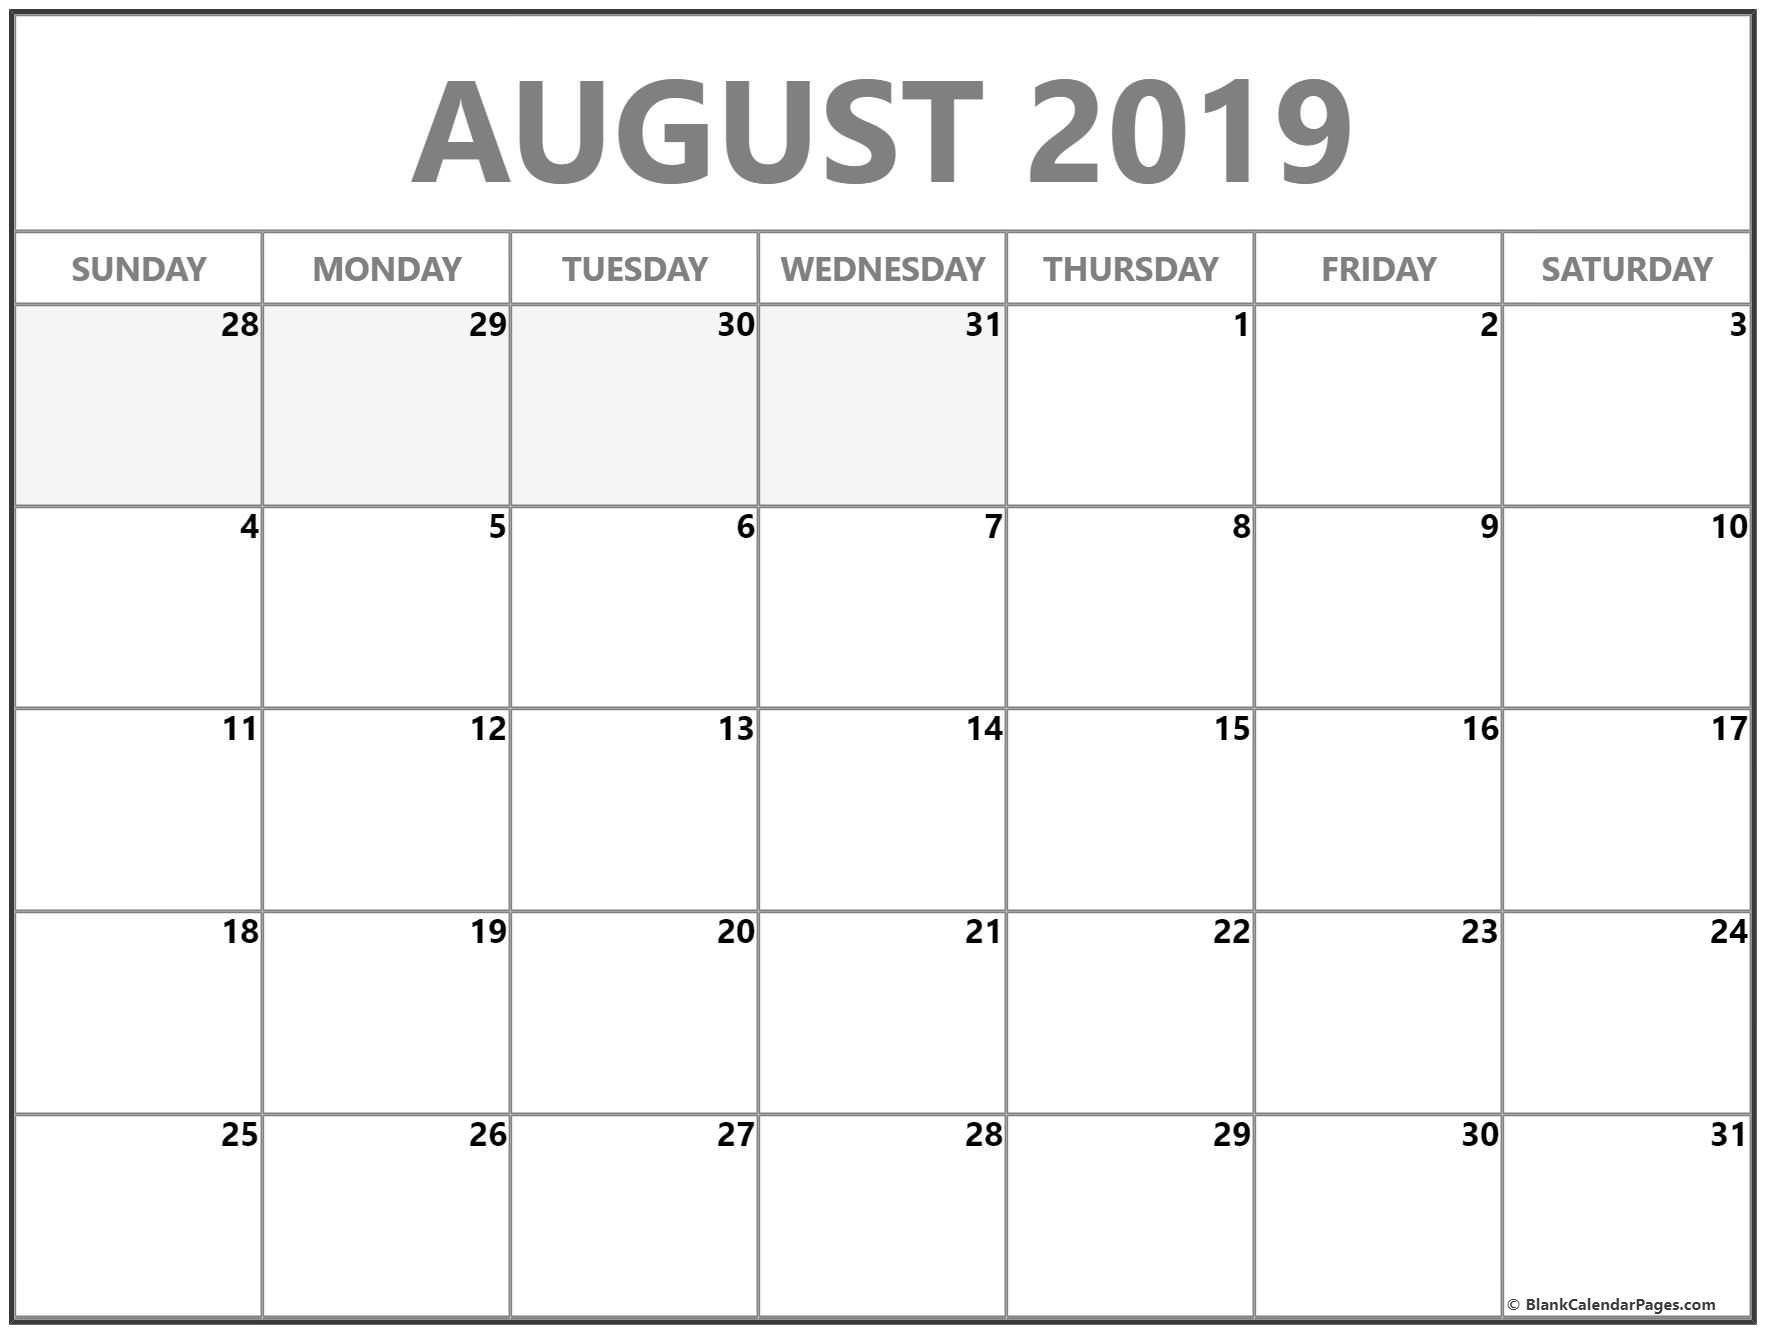 August 2019 Calendar | Free Printable Monthly Calendars-August Monthly Calendar Template